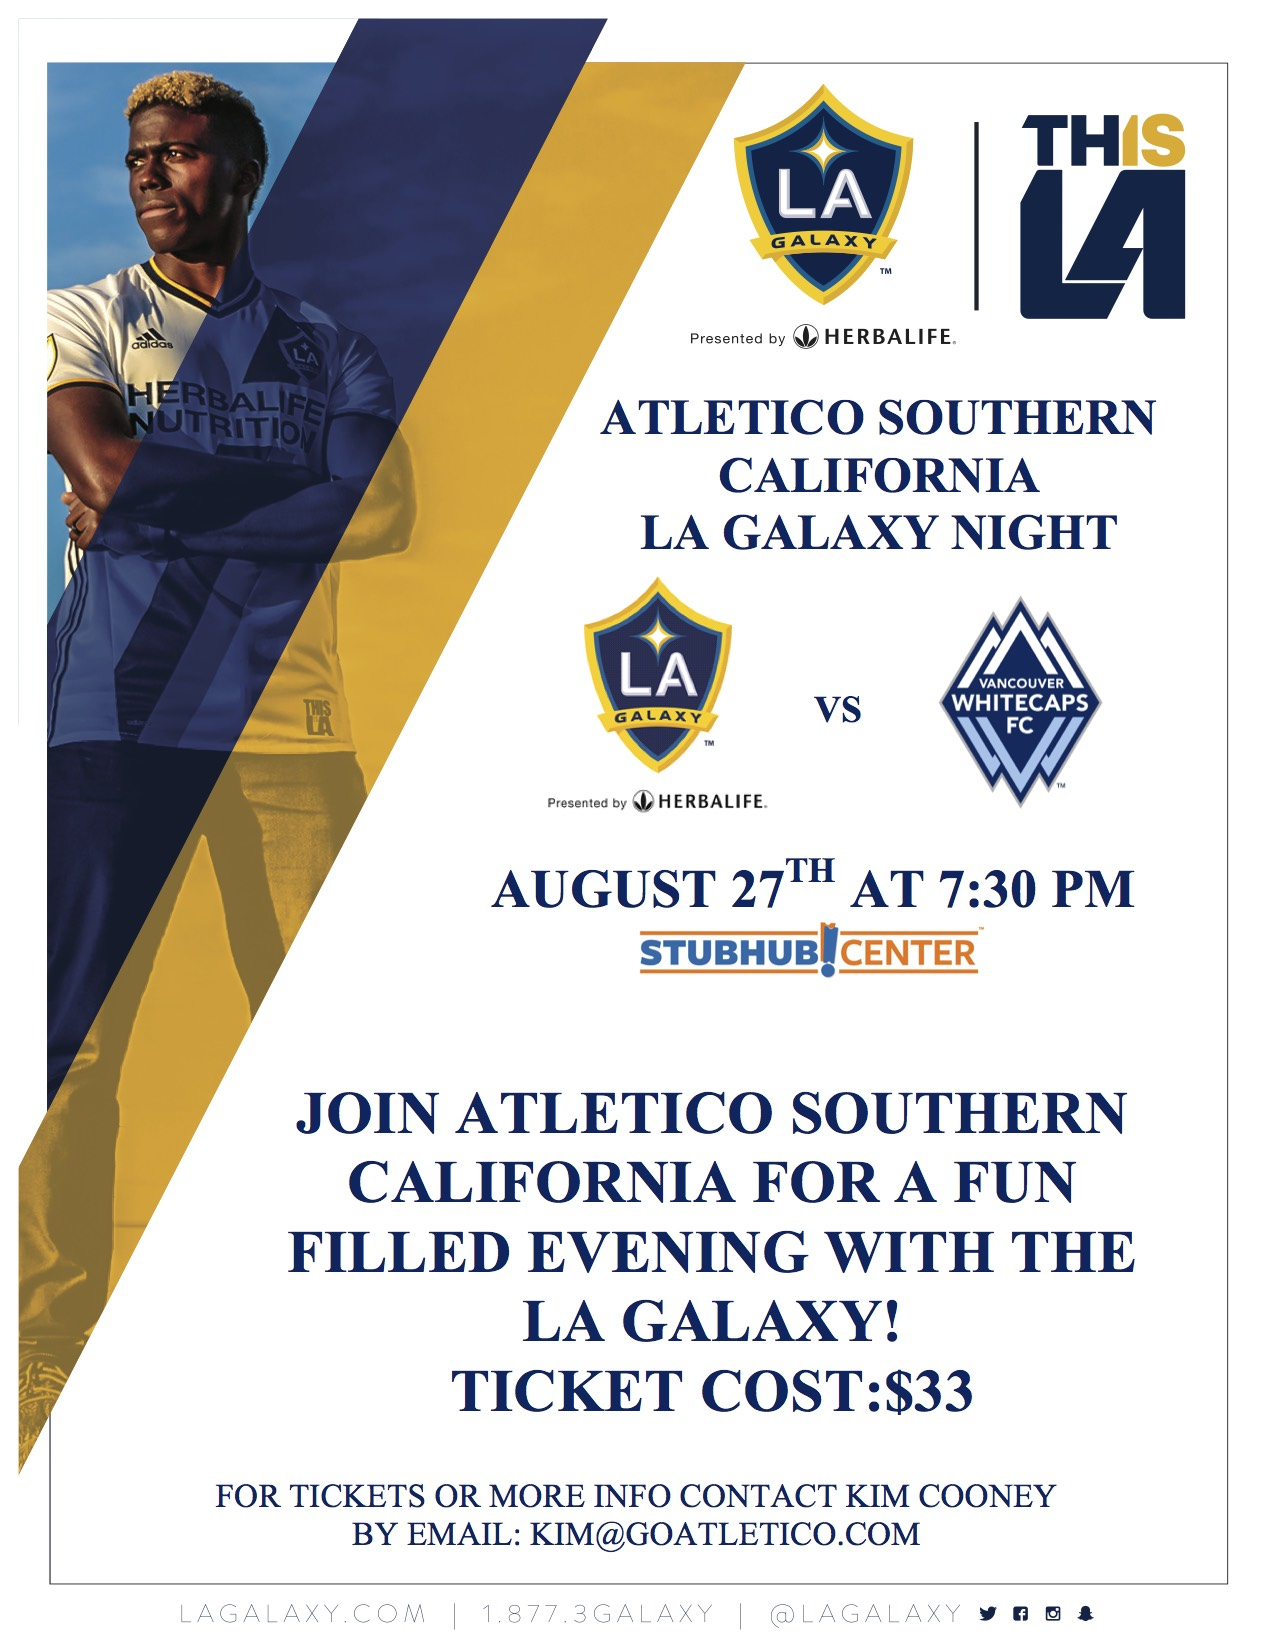 Families may use the button below to purchase the tickets ordered. For any questions please email: kim@goatletico.com